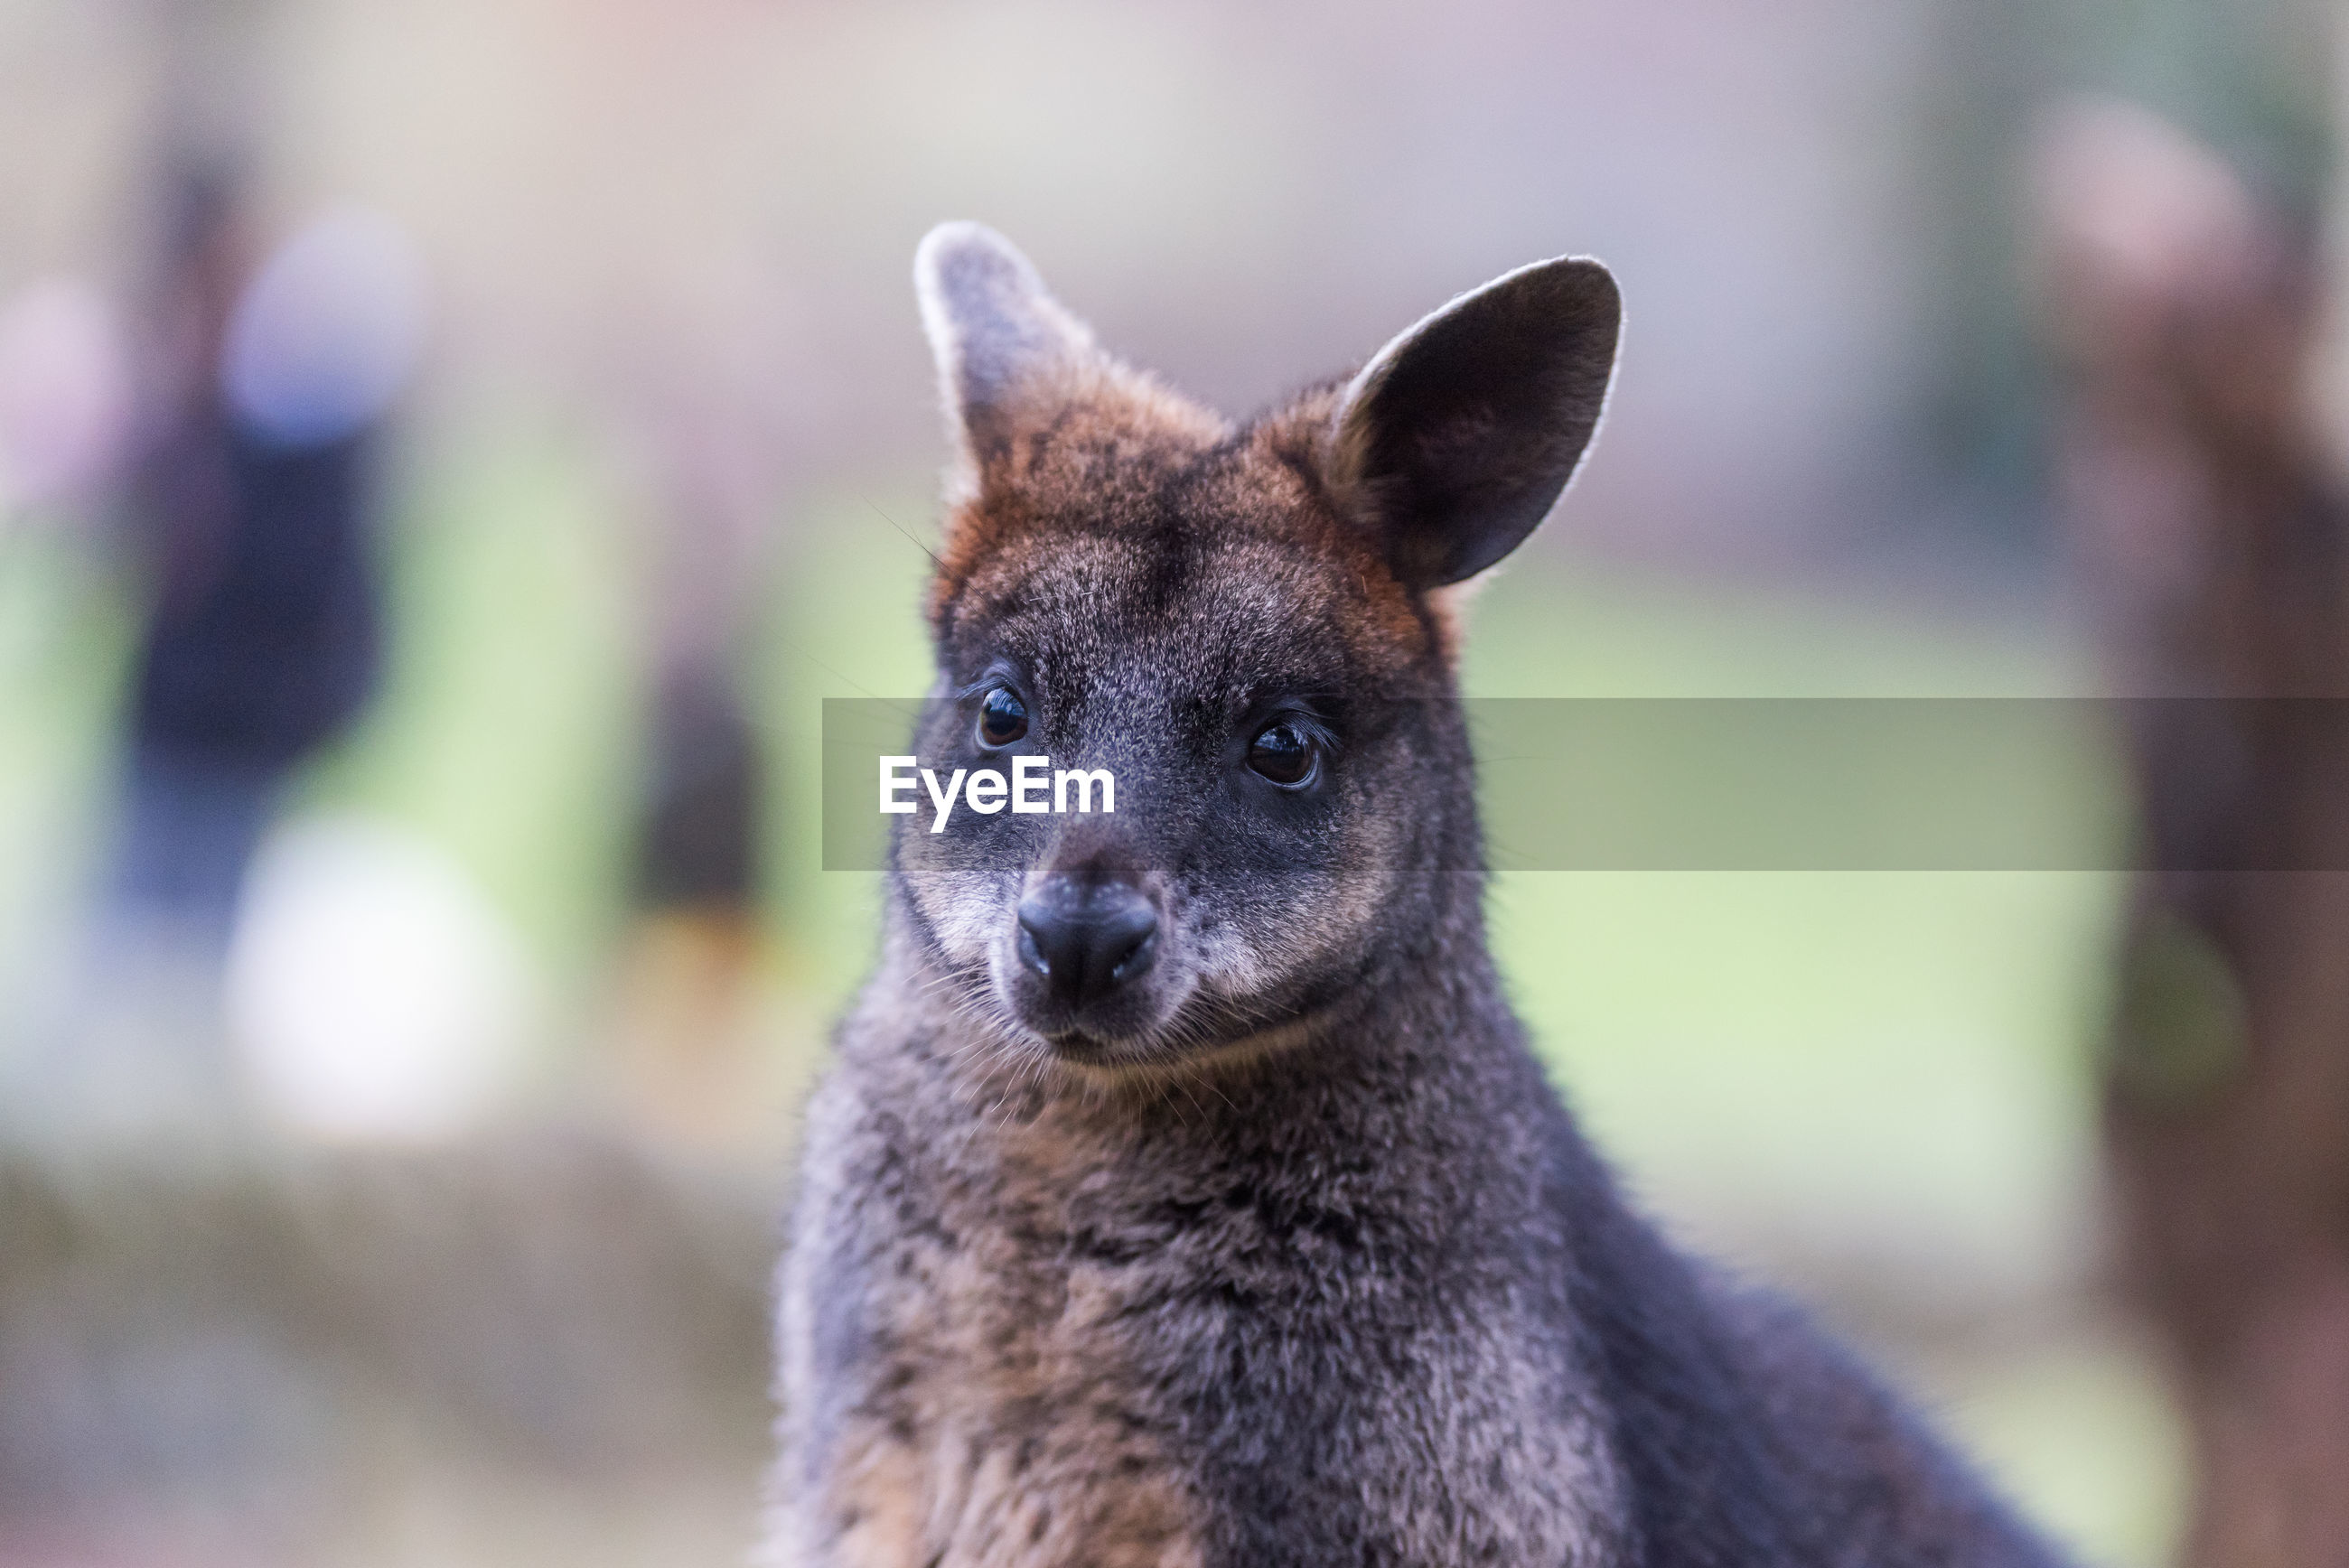 Close-up of swamp wallaby looking away